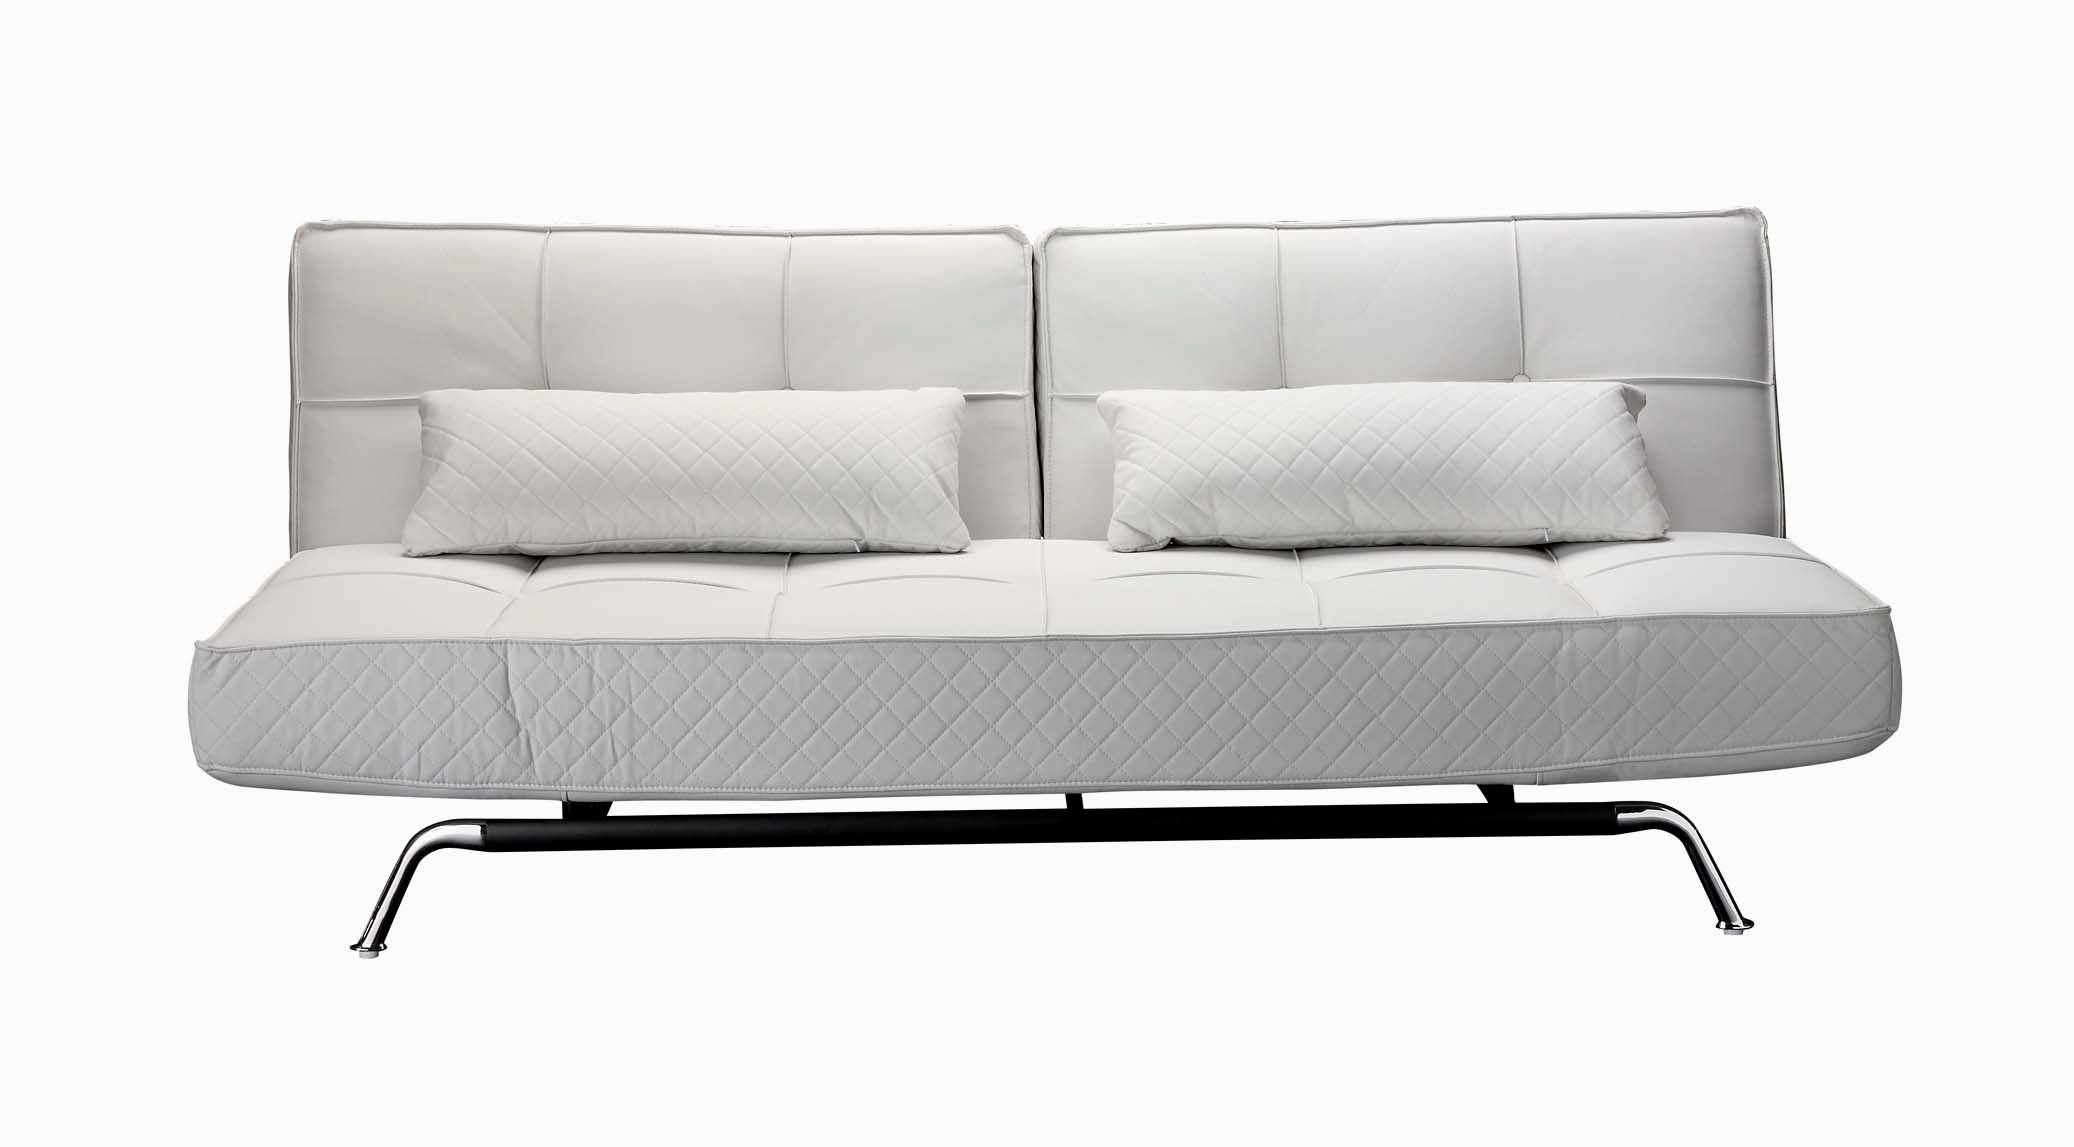 contemporary sleeper sofa mattress construction-Best Sleeper sofa Mattress Gallery